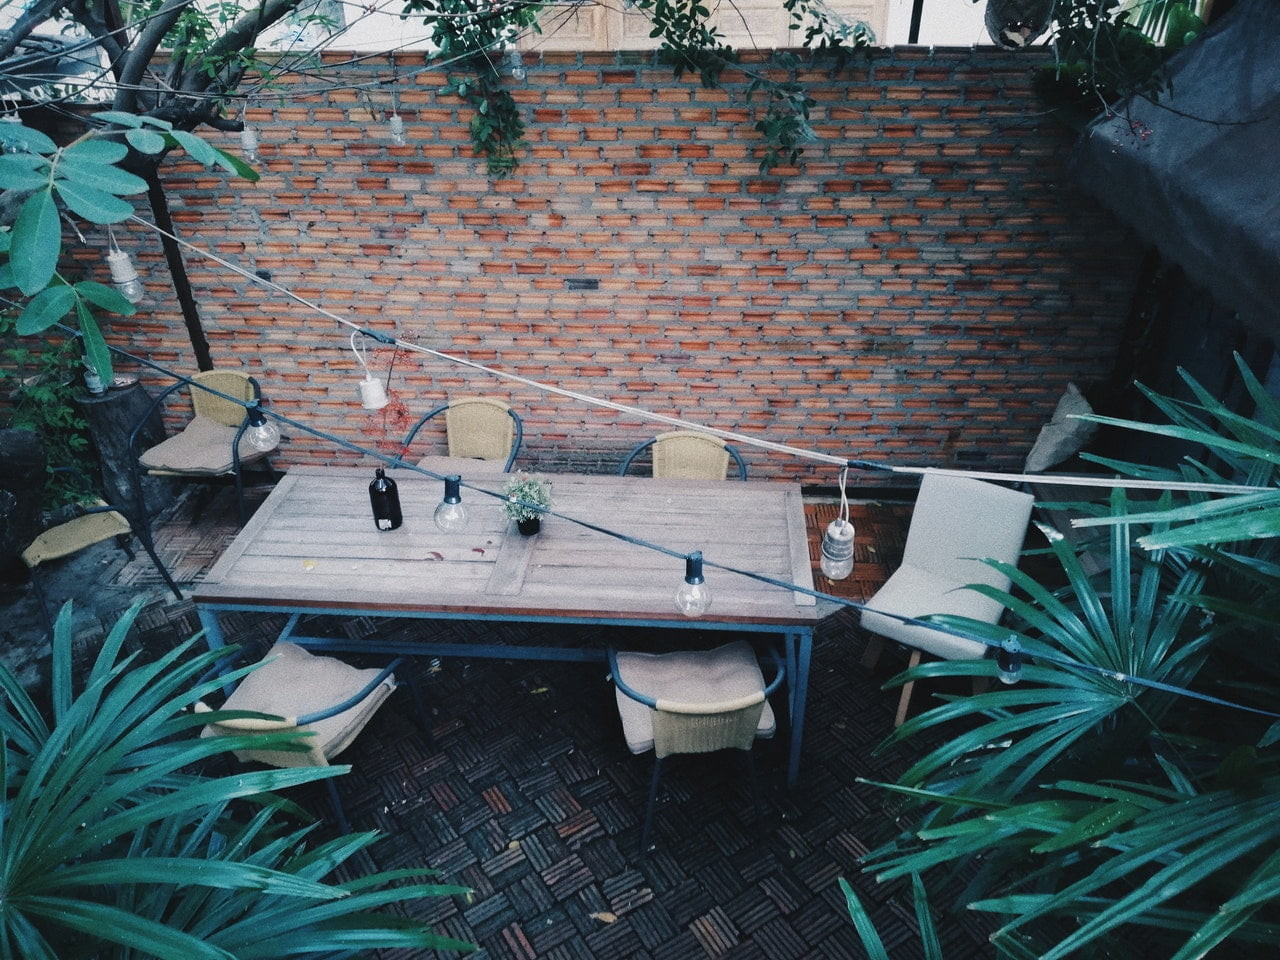 How to Make Your Patio More Relaxing